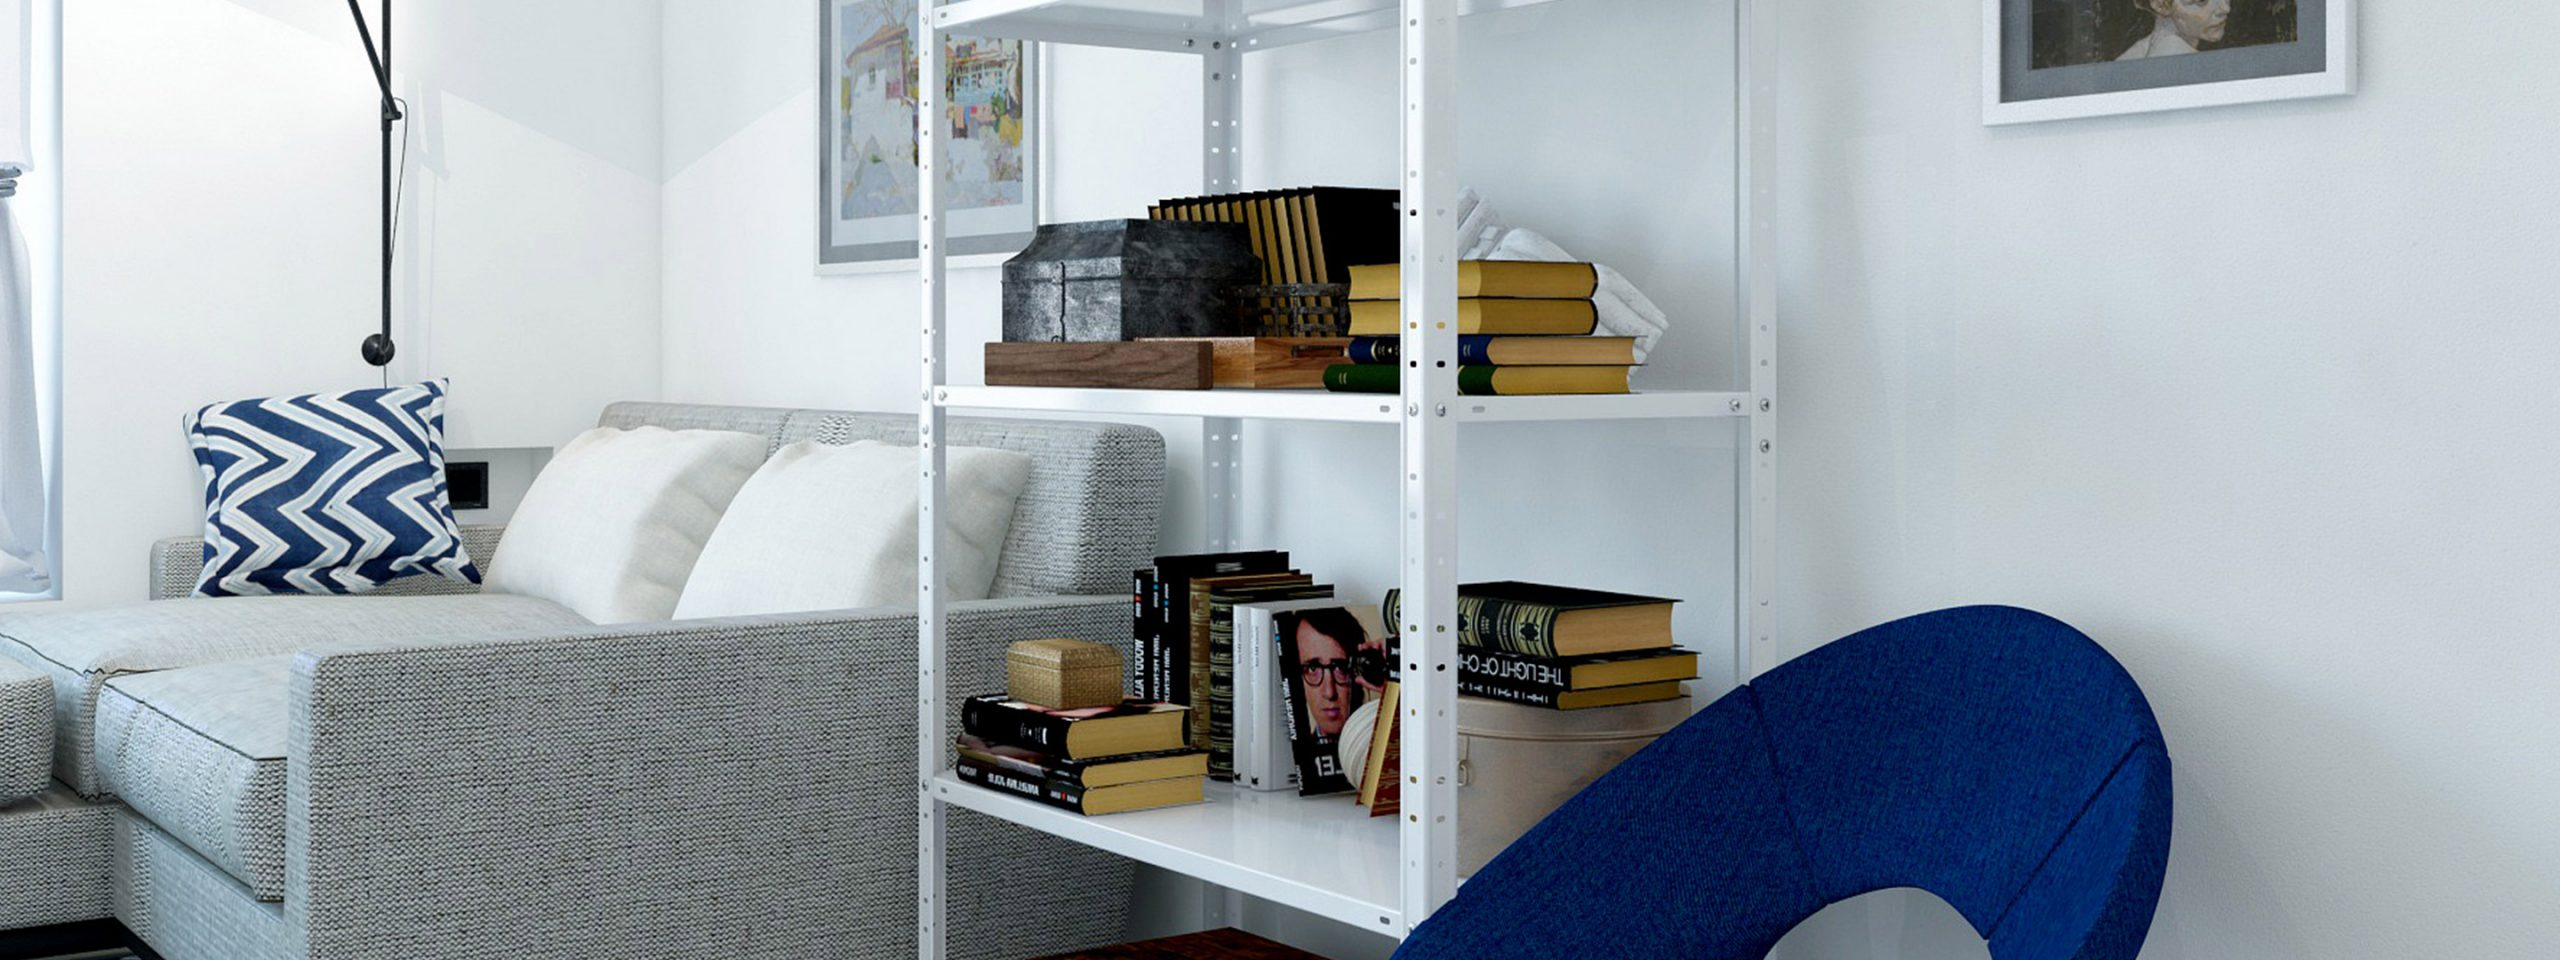 Advantages of metal racks for the house and office